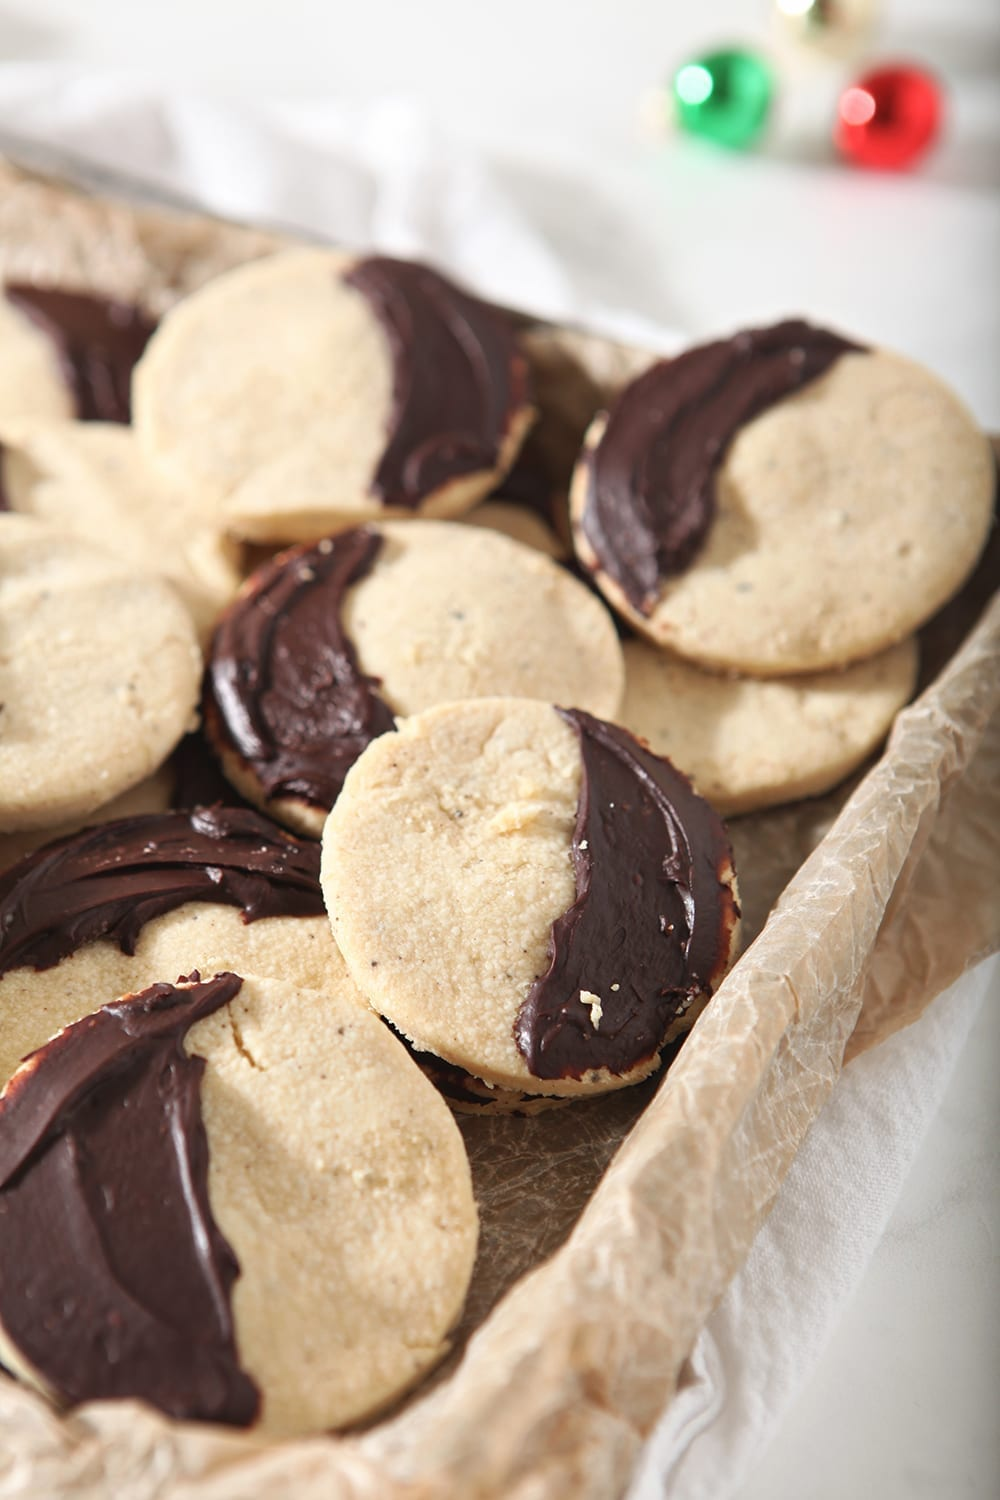 A tray full of Shortbread Brown Butter Cookies with ganache covering half of the cookies